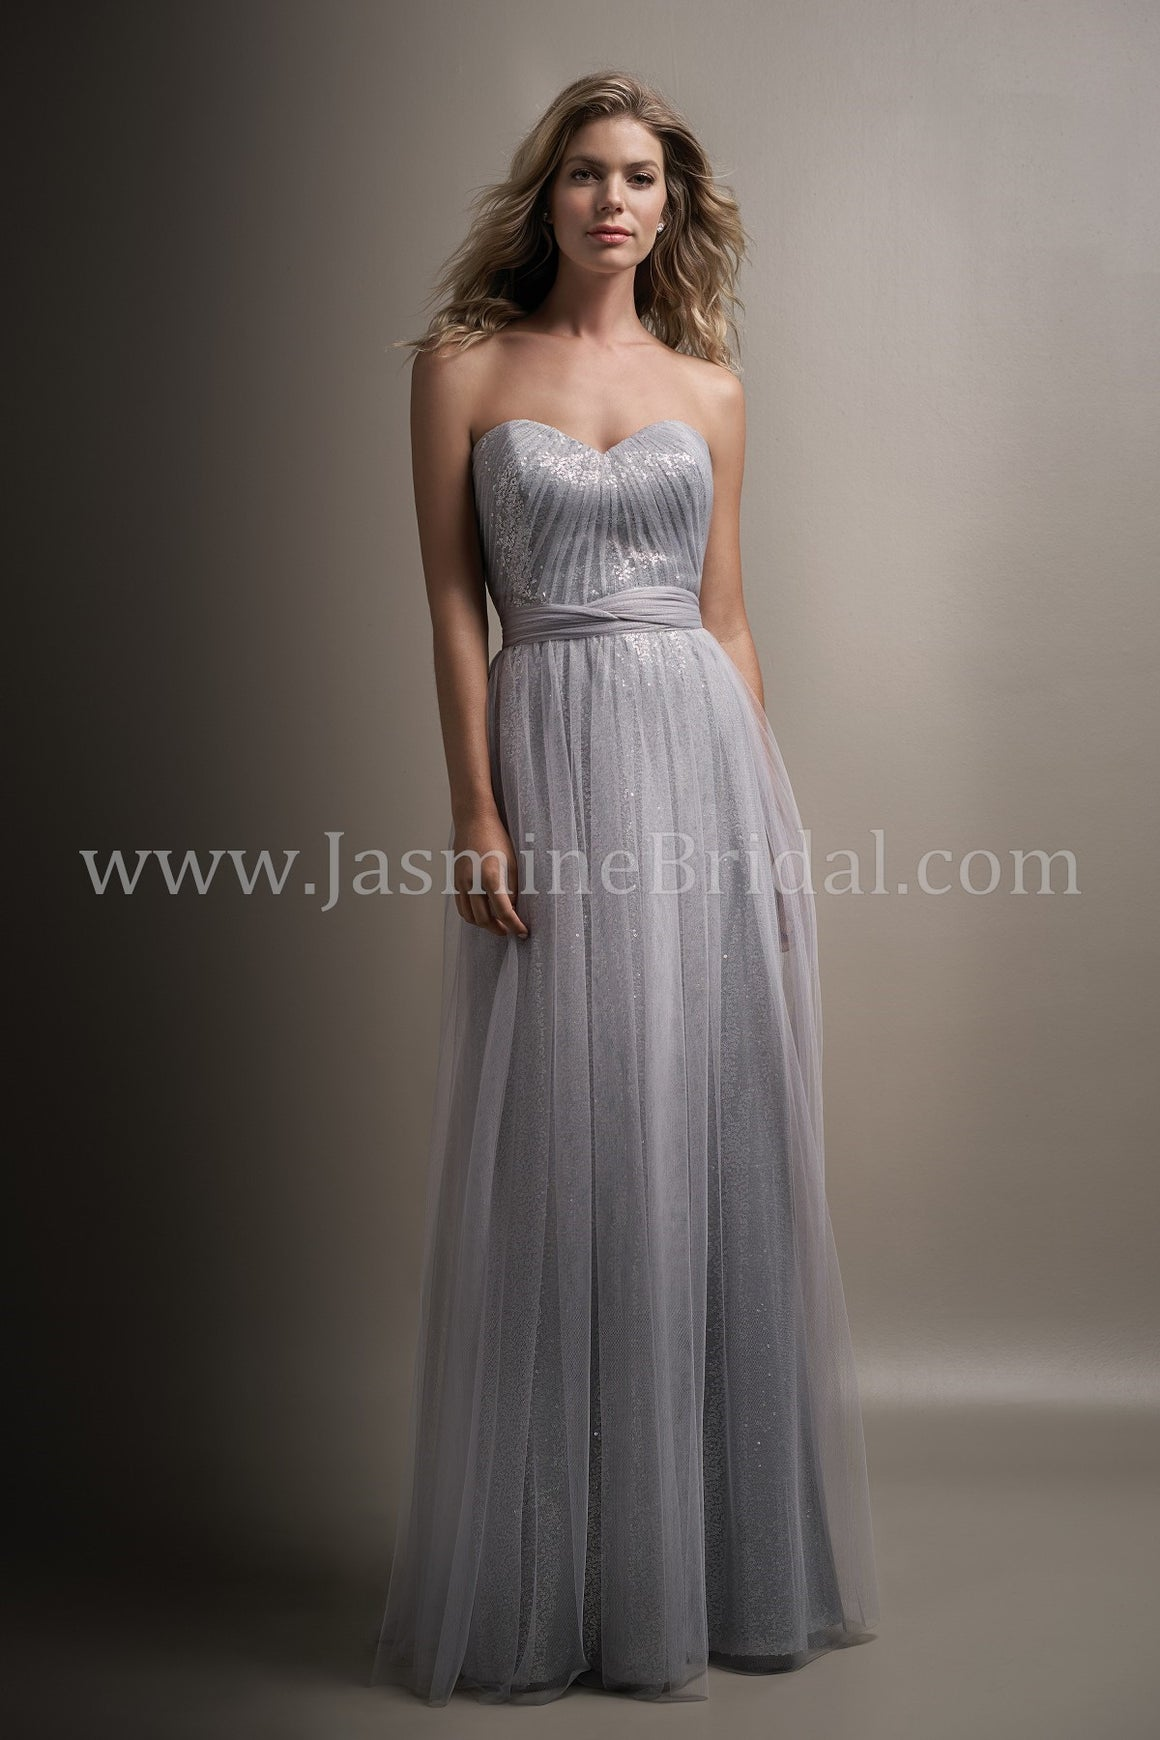 Soft Tulle & Sequins Sweetheart Convertible Dress  - Available Long or Short - Several Colors - Sizes 00-34 - In Store ONLY